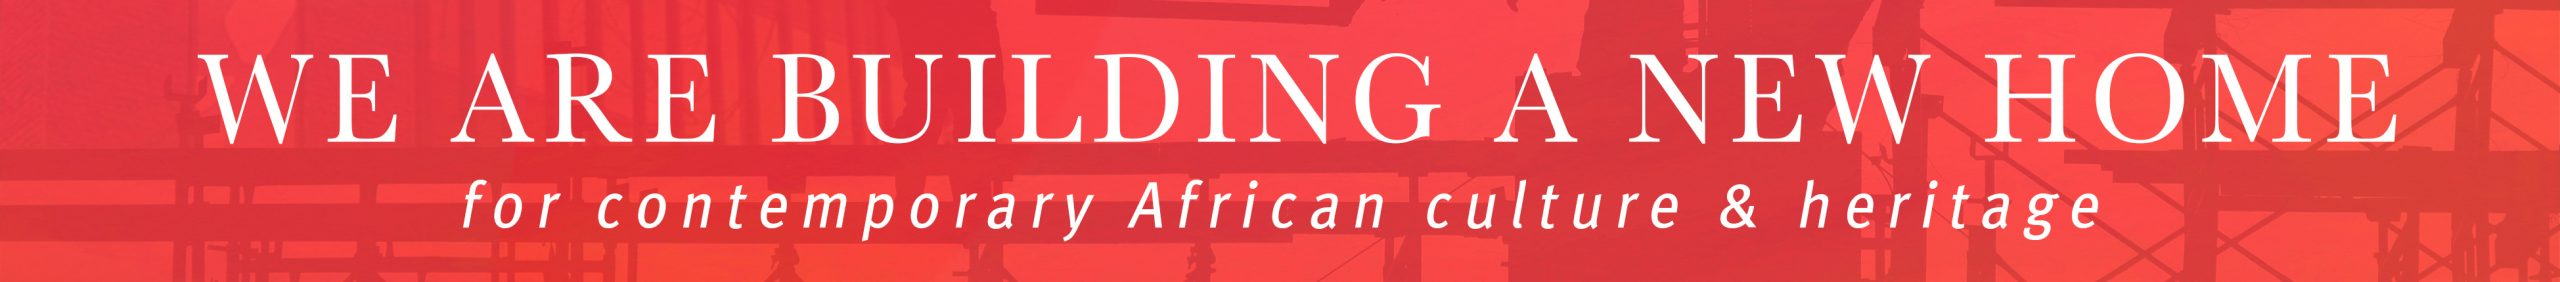 Africa Centre is building a new home